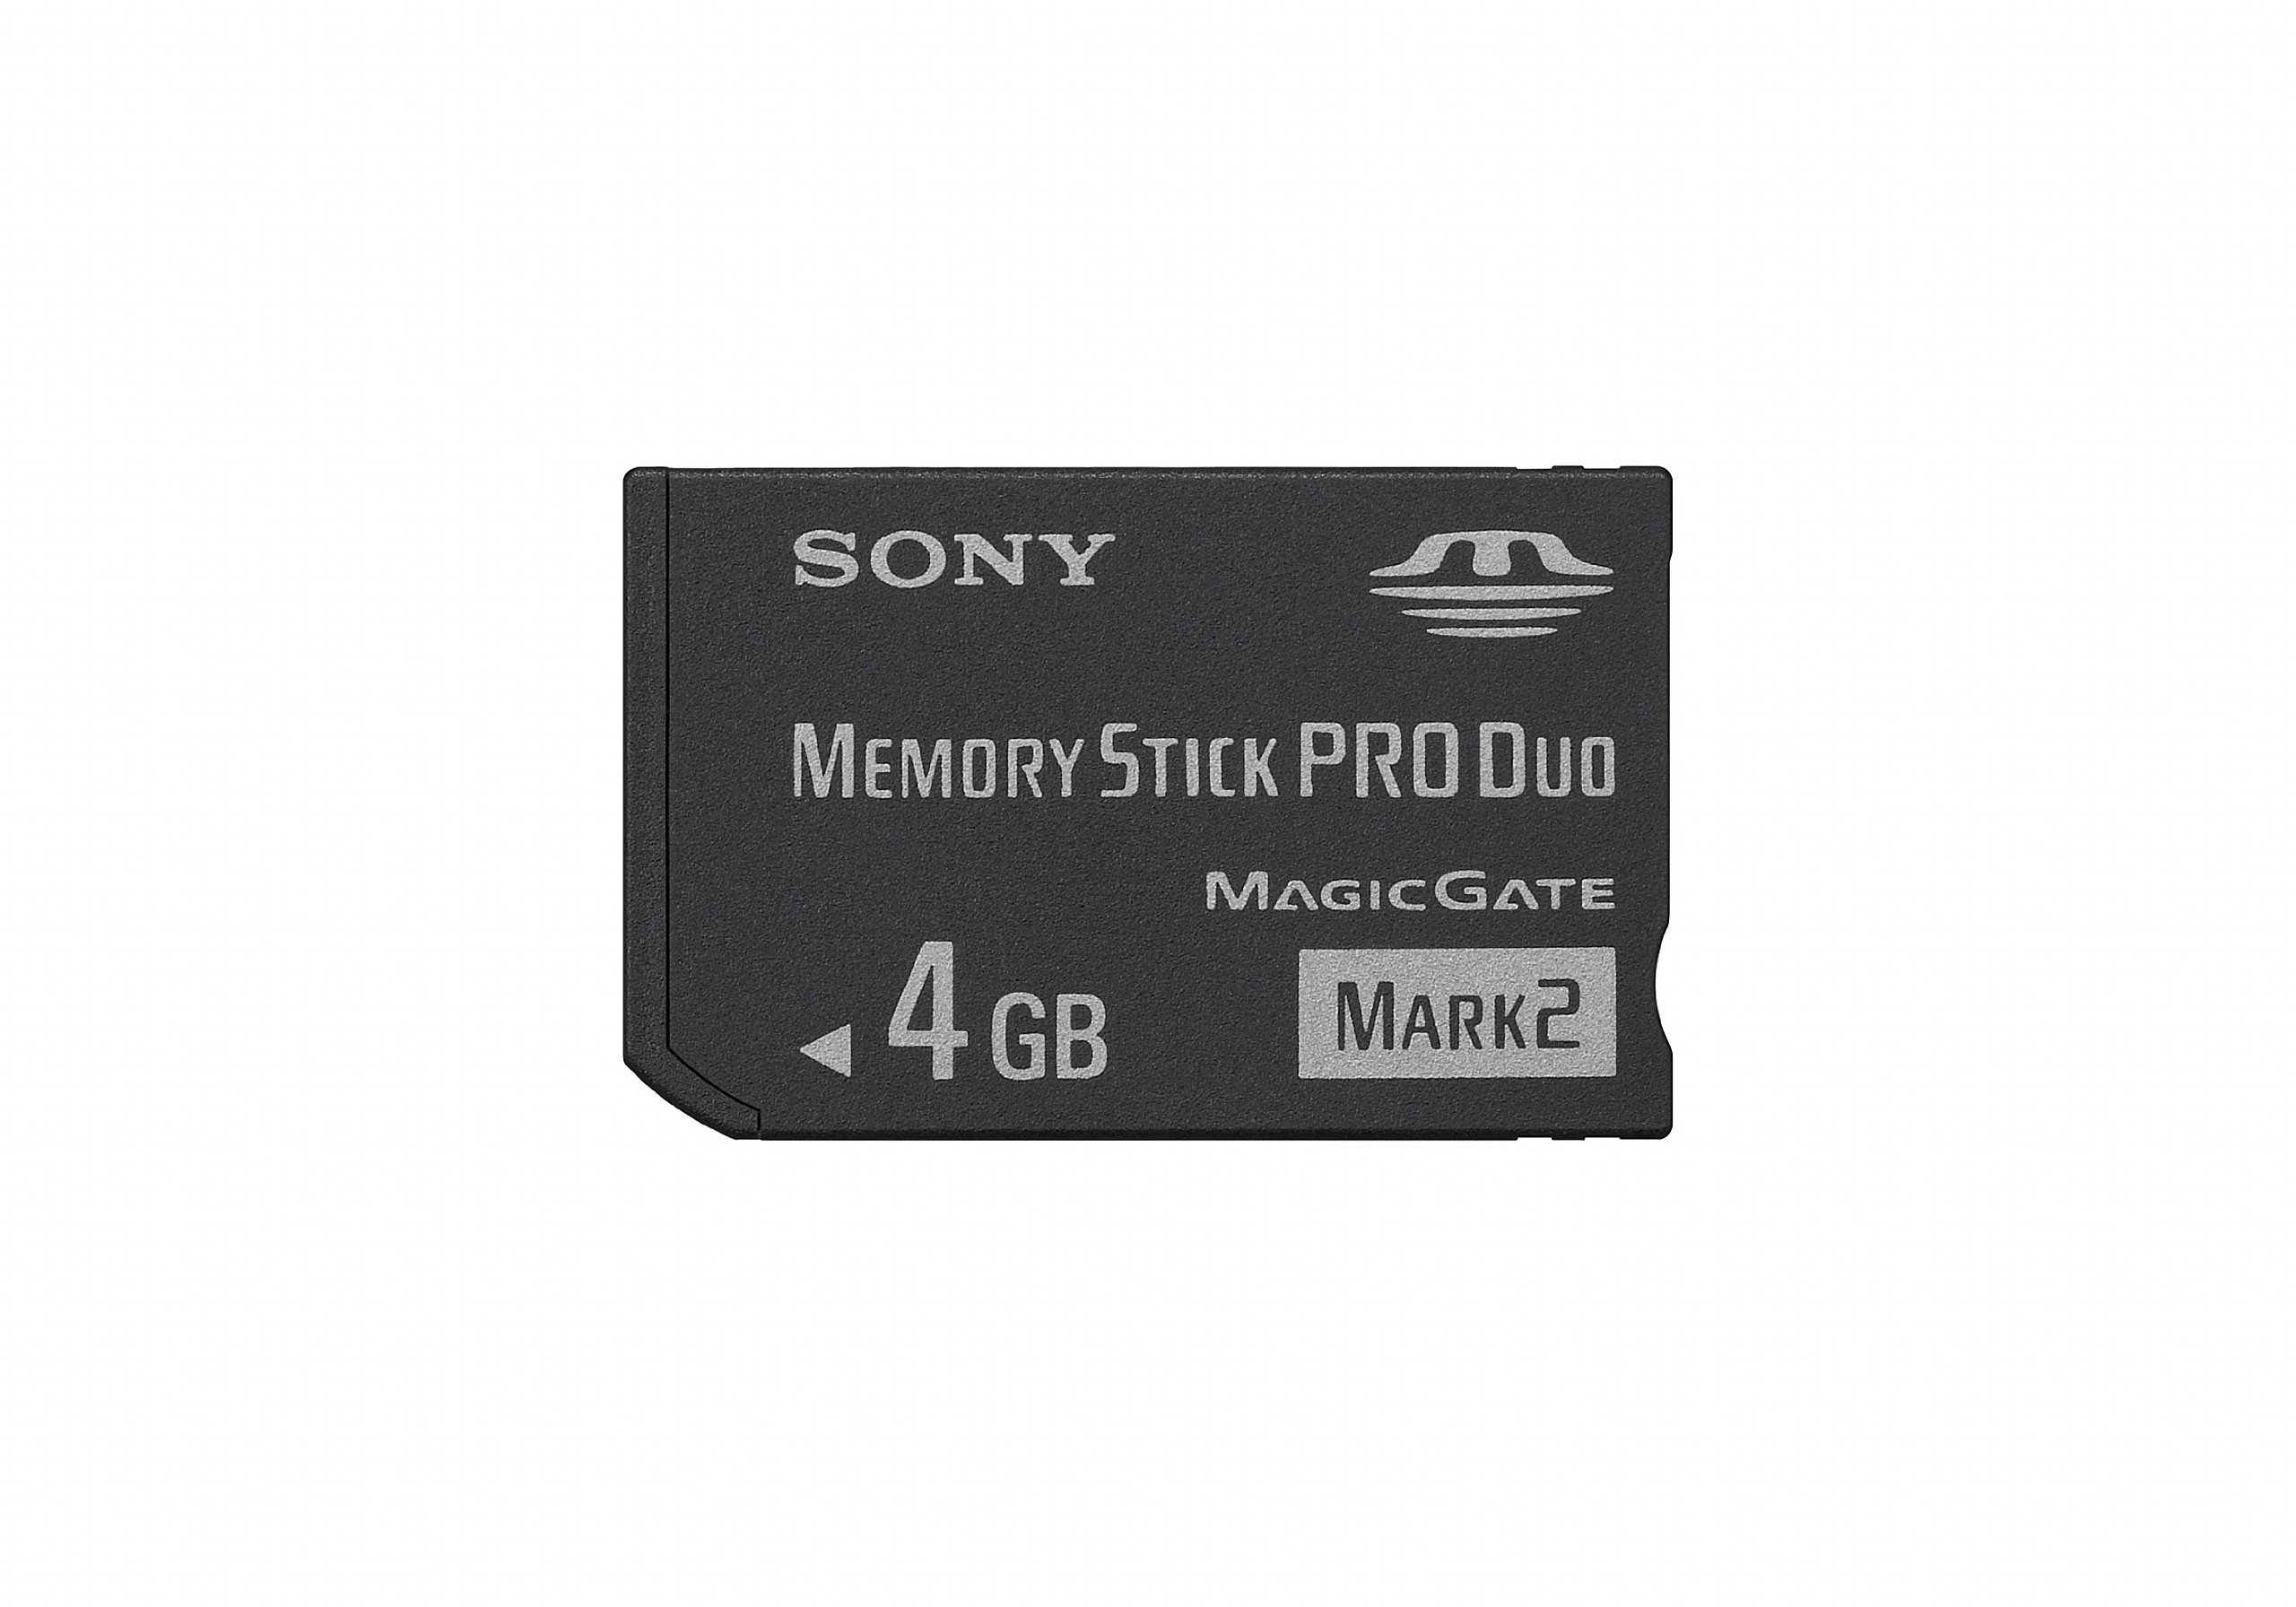 Sony 4GB MS PRO DUO (Mark 2) Memory Stick (MSMT4G/TQMN)